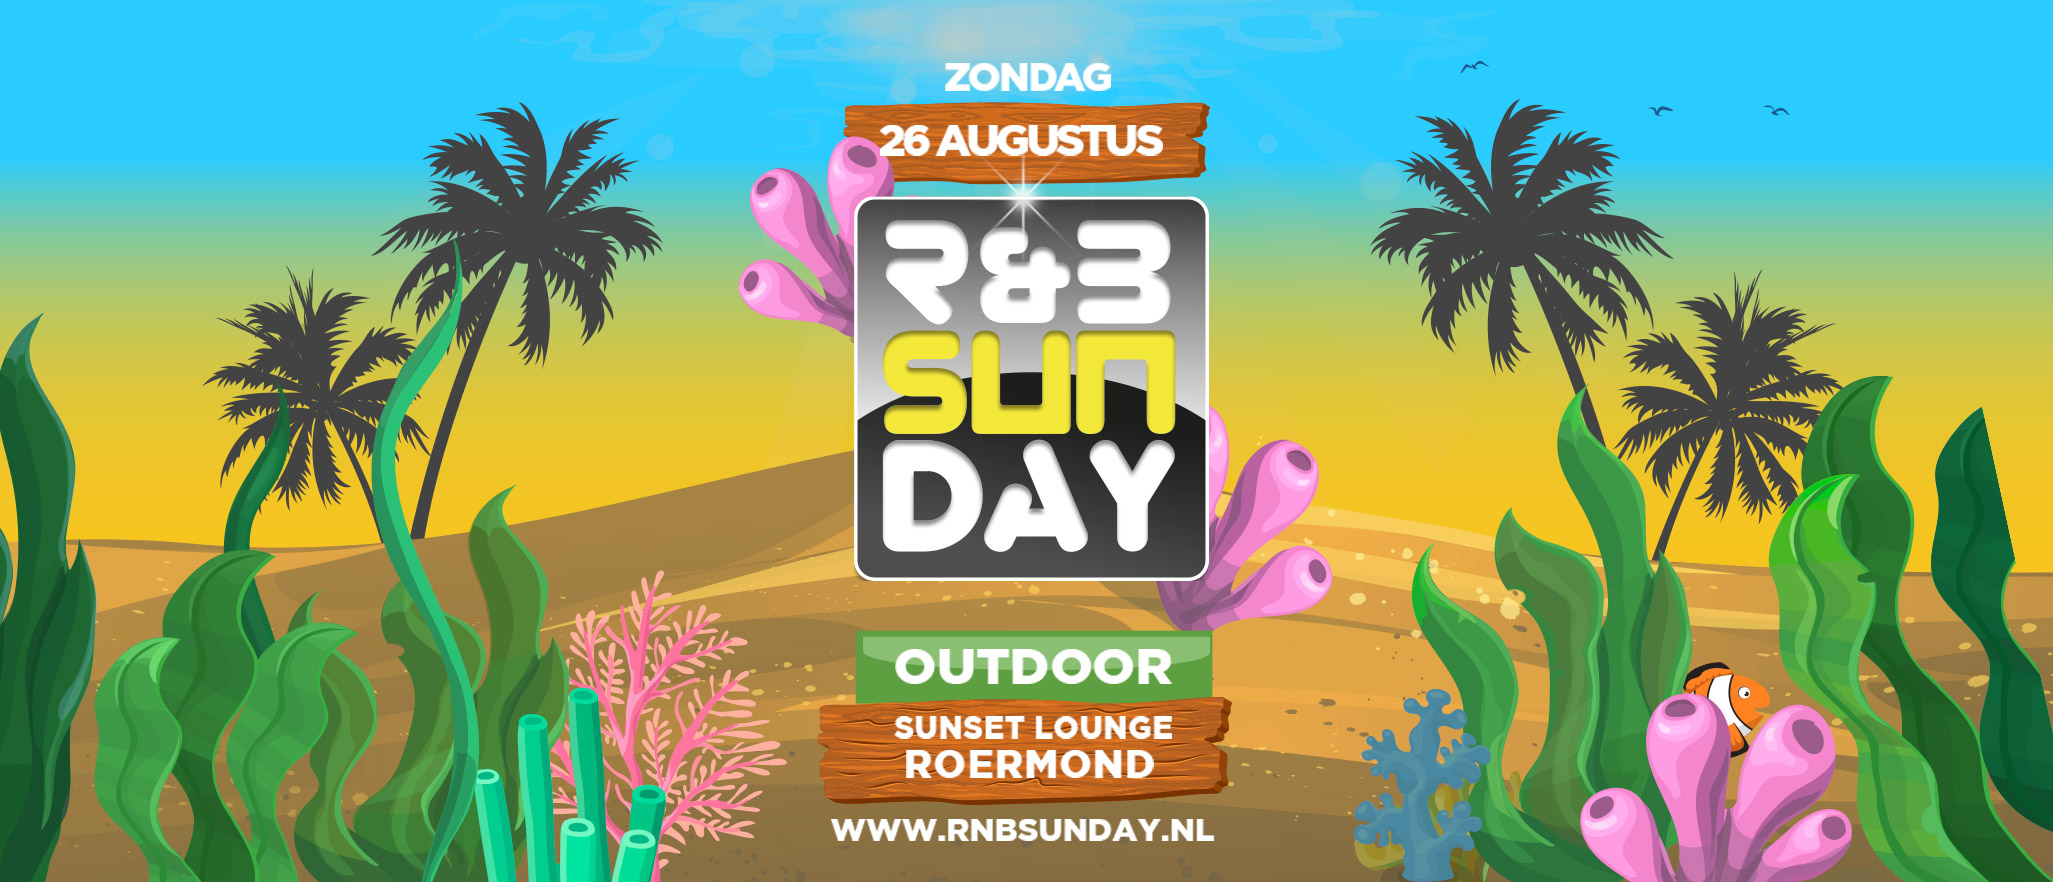 R&B Sunday Outdoor 2018 | Sunset Lounge Roermond